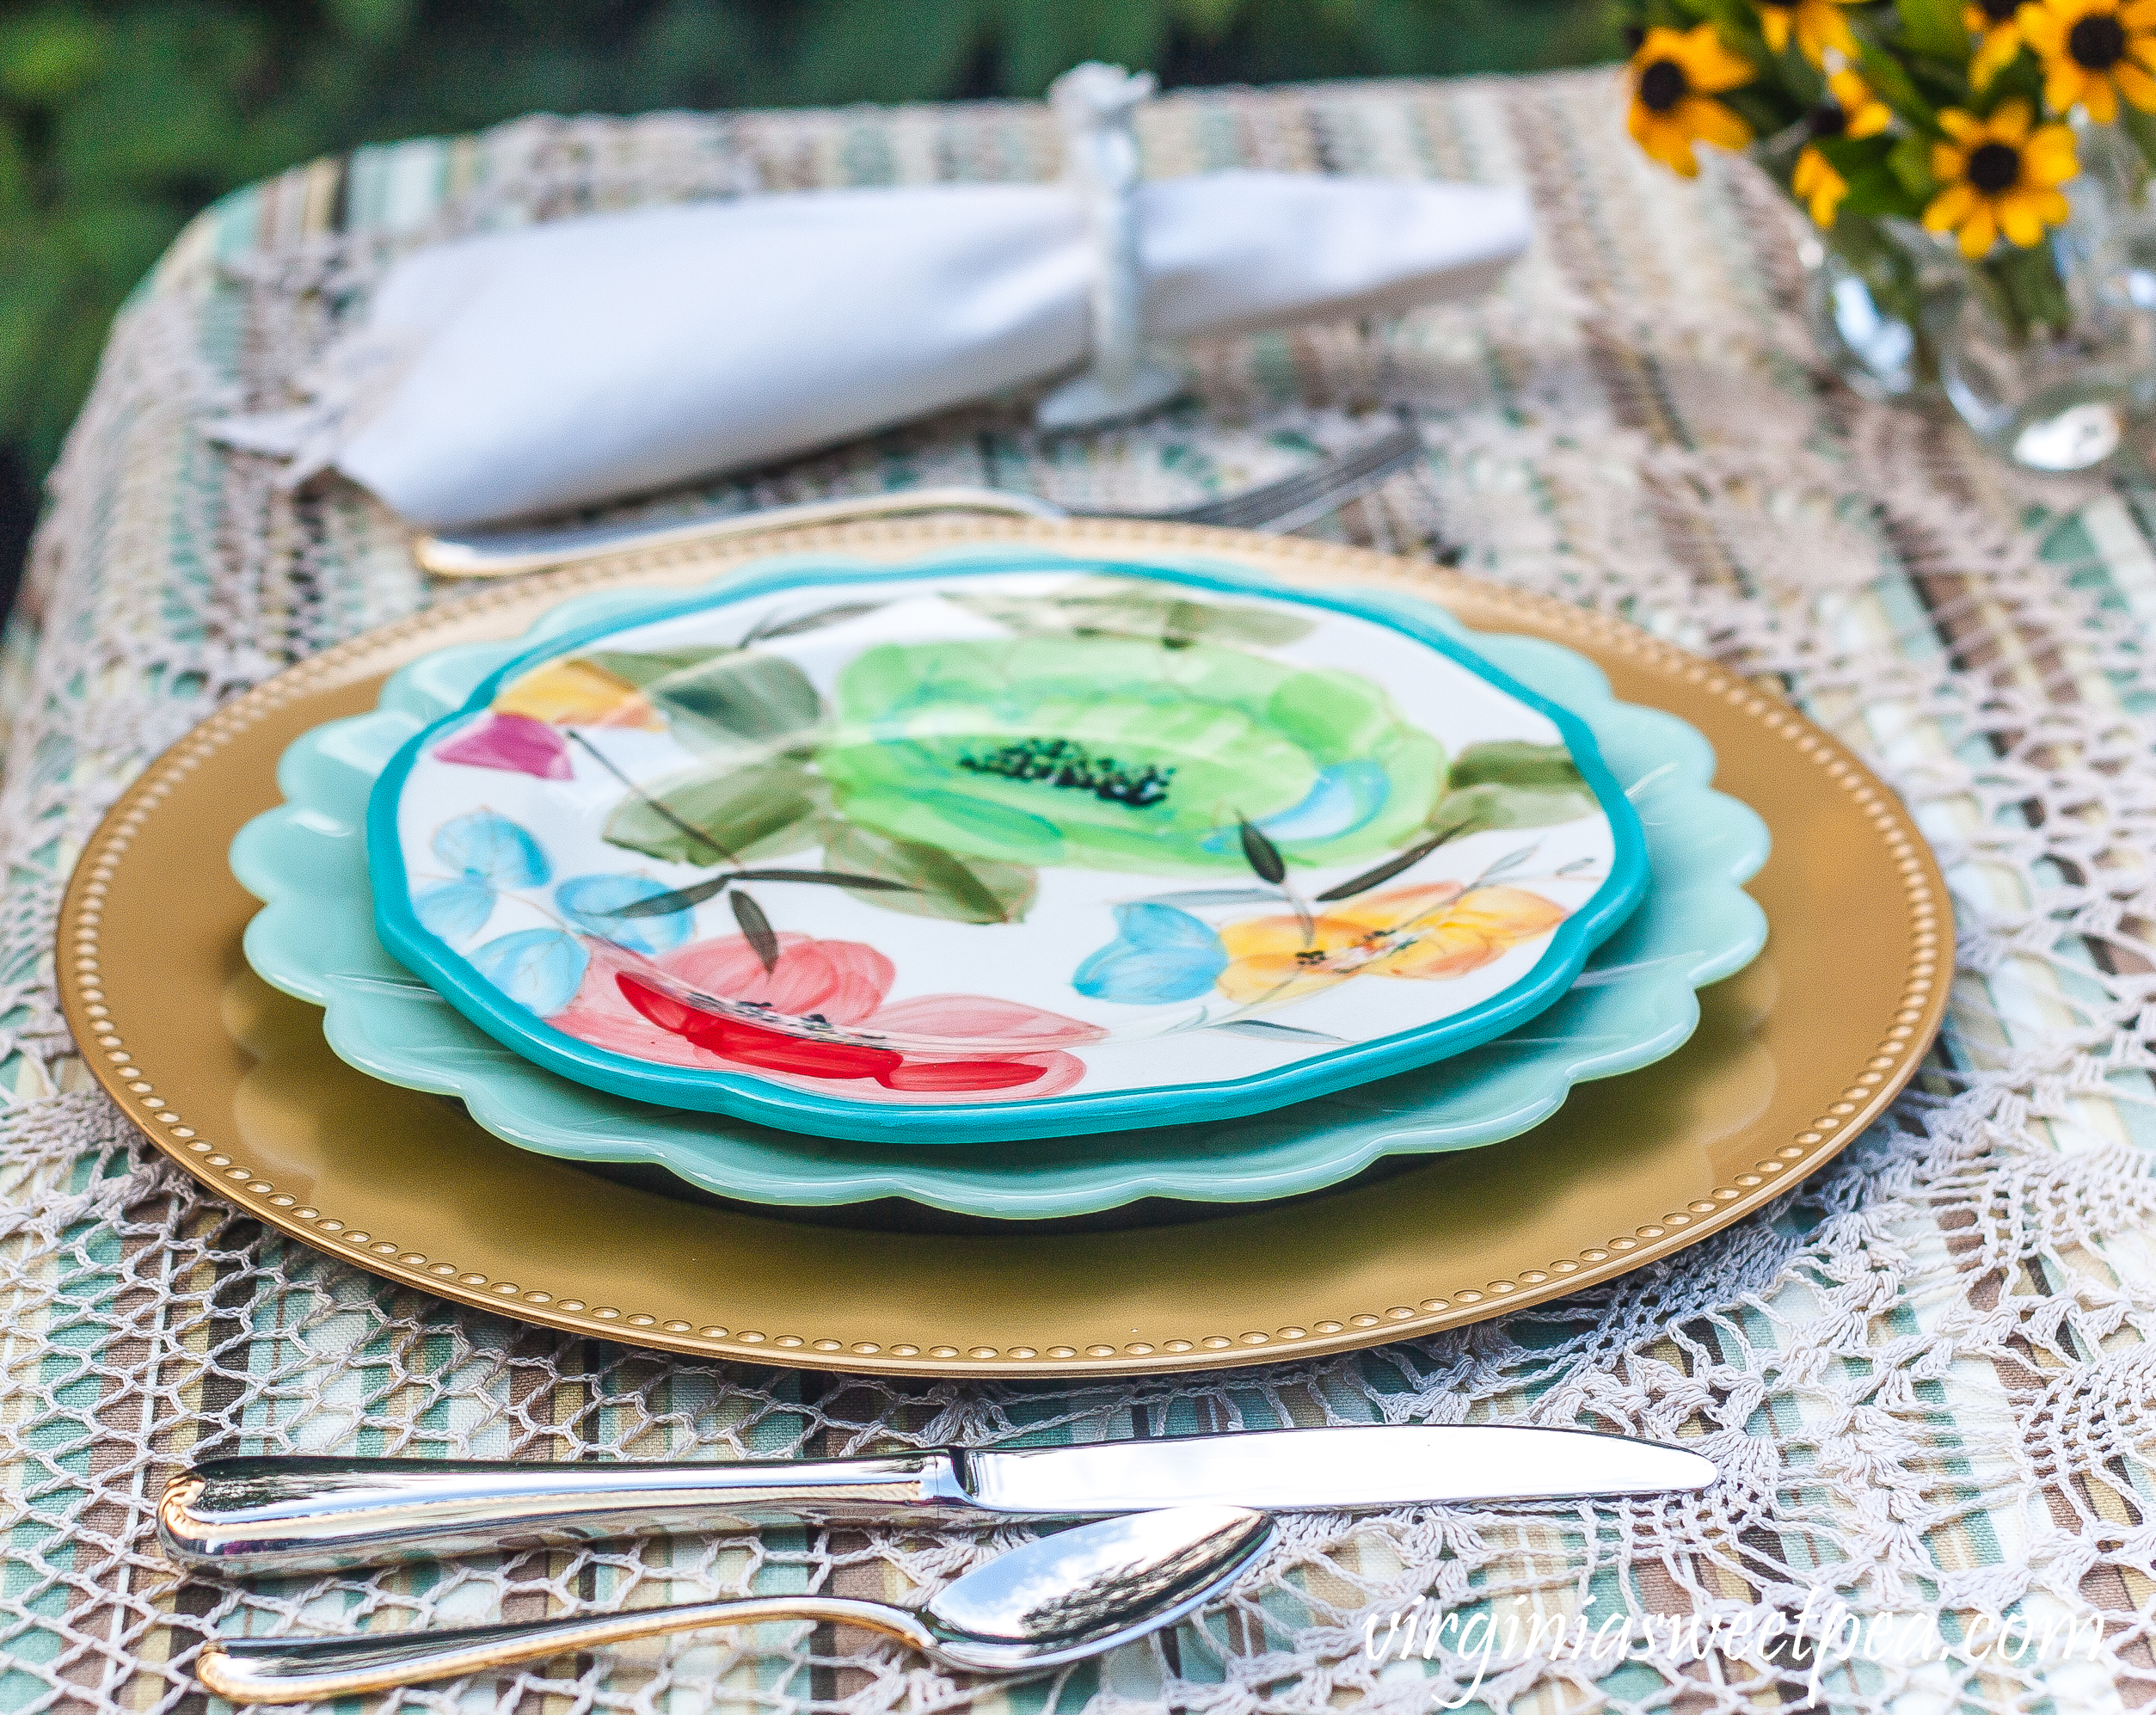 Table setting with Pioneer Woman dishes and Gorham Golden Ribbon Edge flatware.